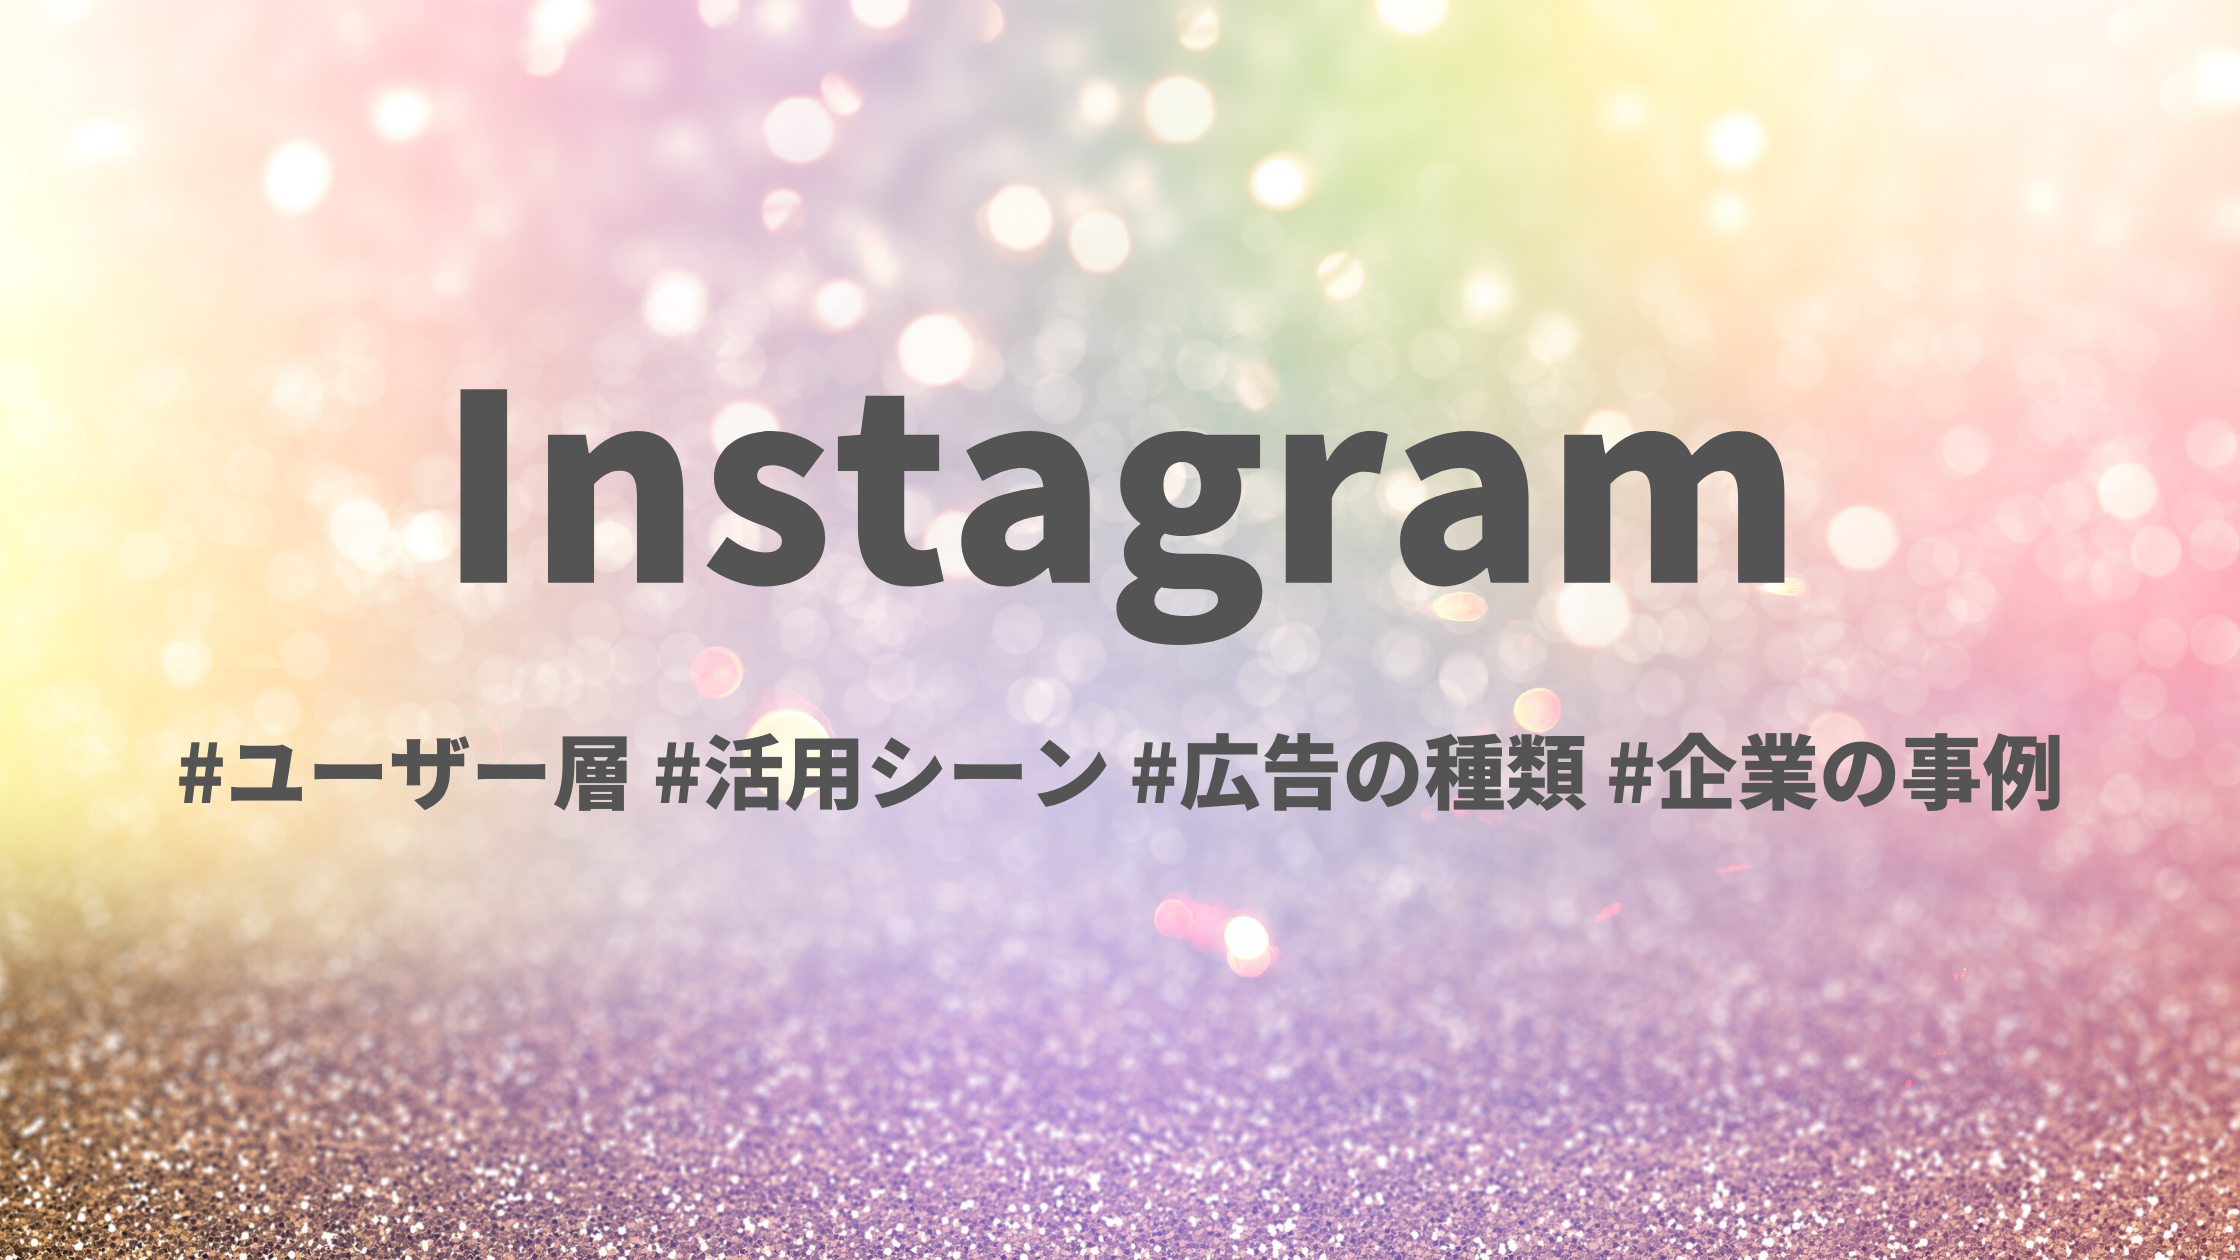 Instagramユーザー数は 日本国内で3,300万人! 利用者増が続く理由は? ユーザー層_広告_企業の活用事例も